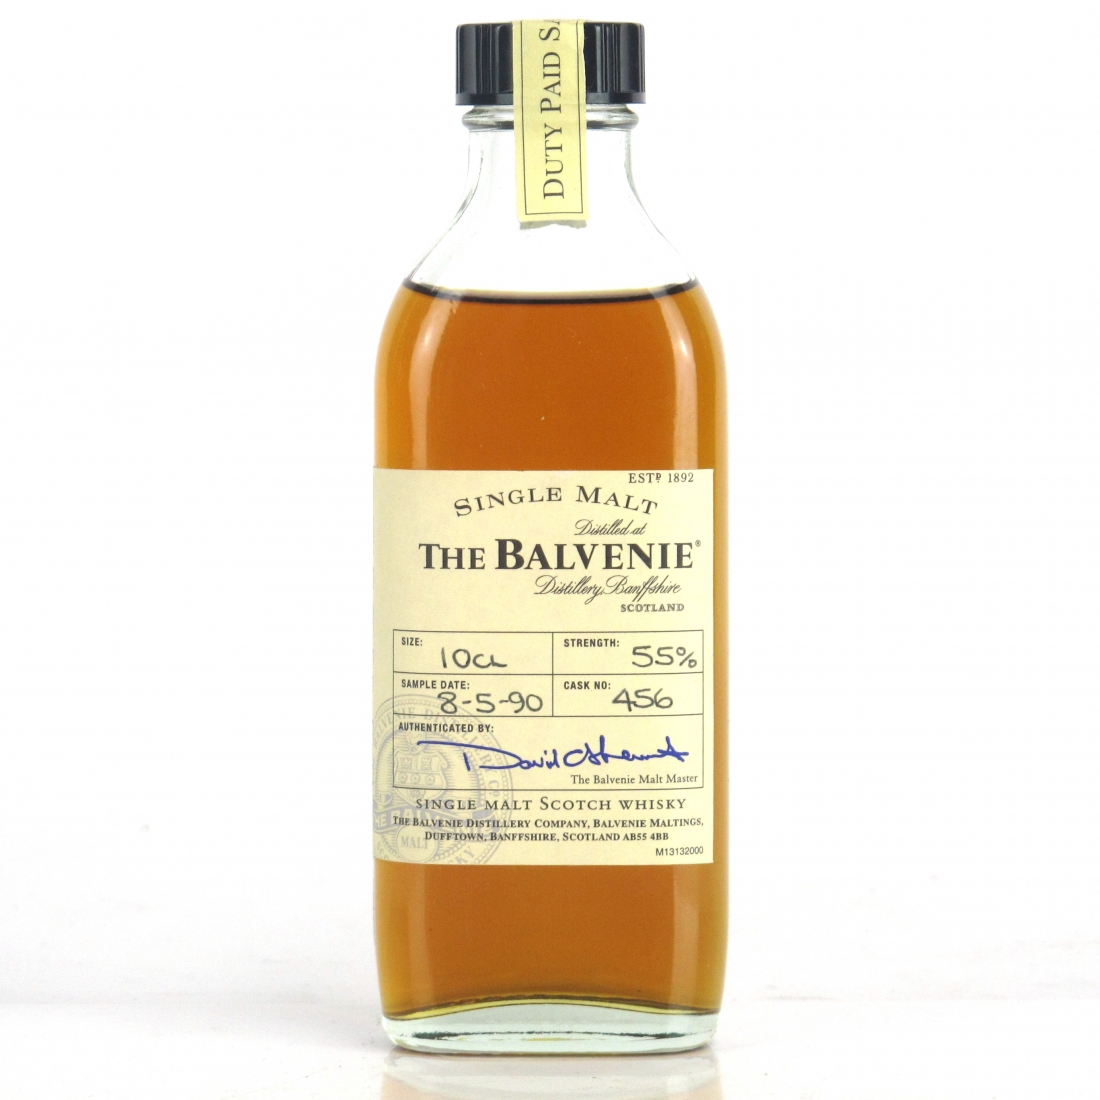 Balvenie 1990 Single Cask Sample #456 10cl